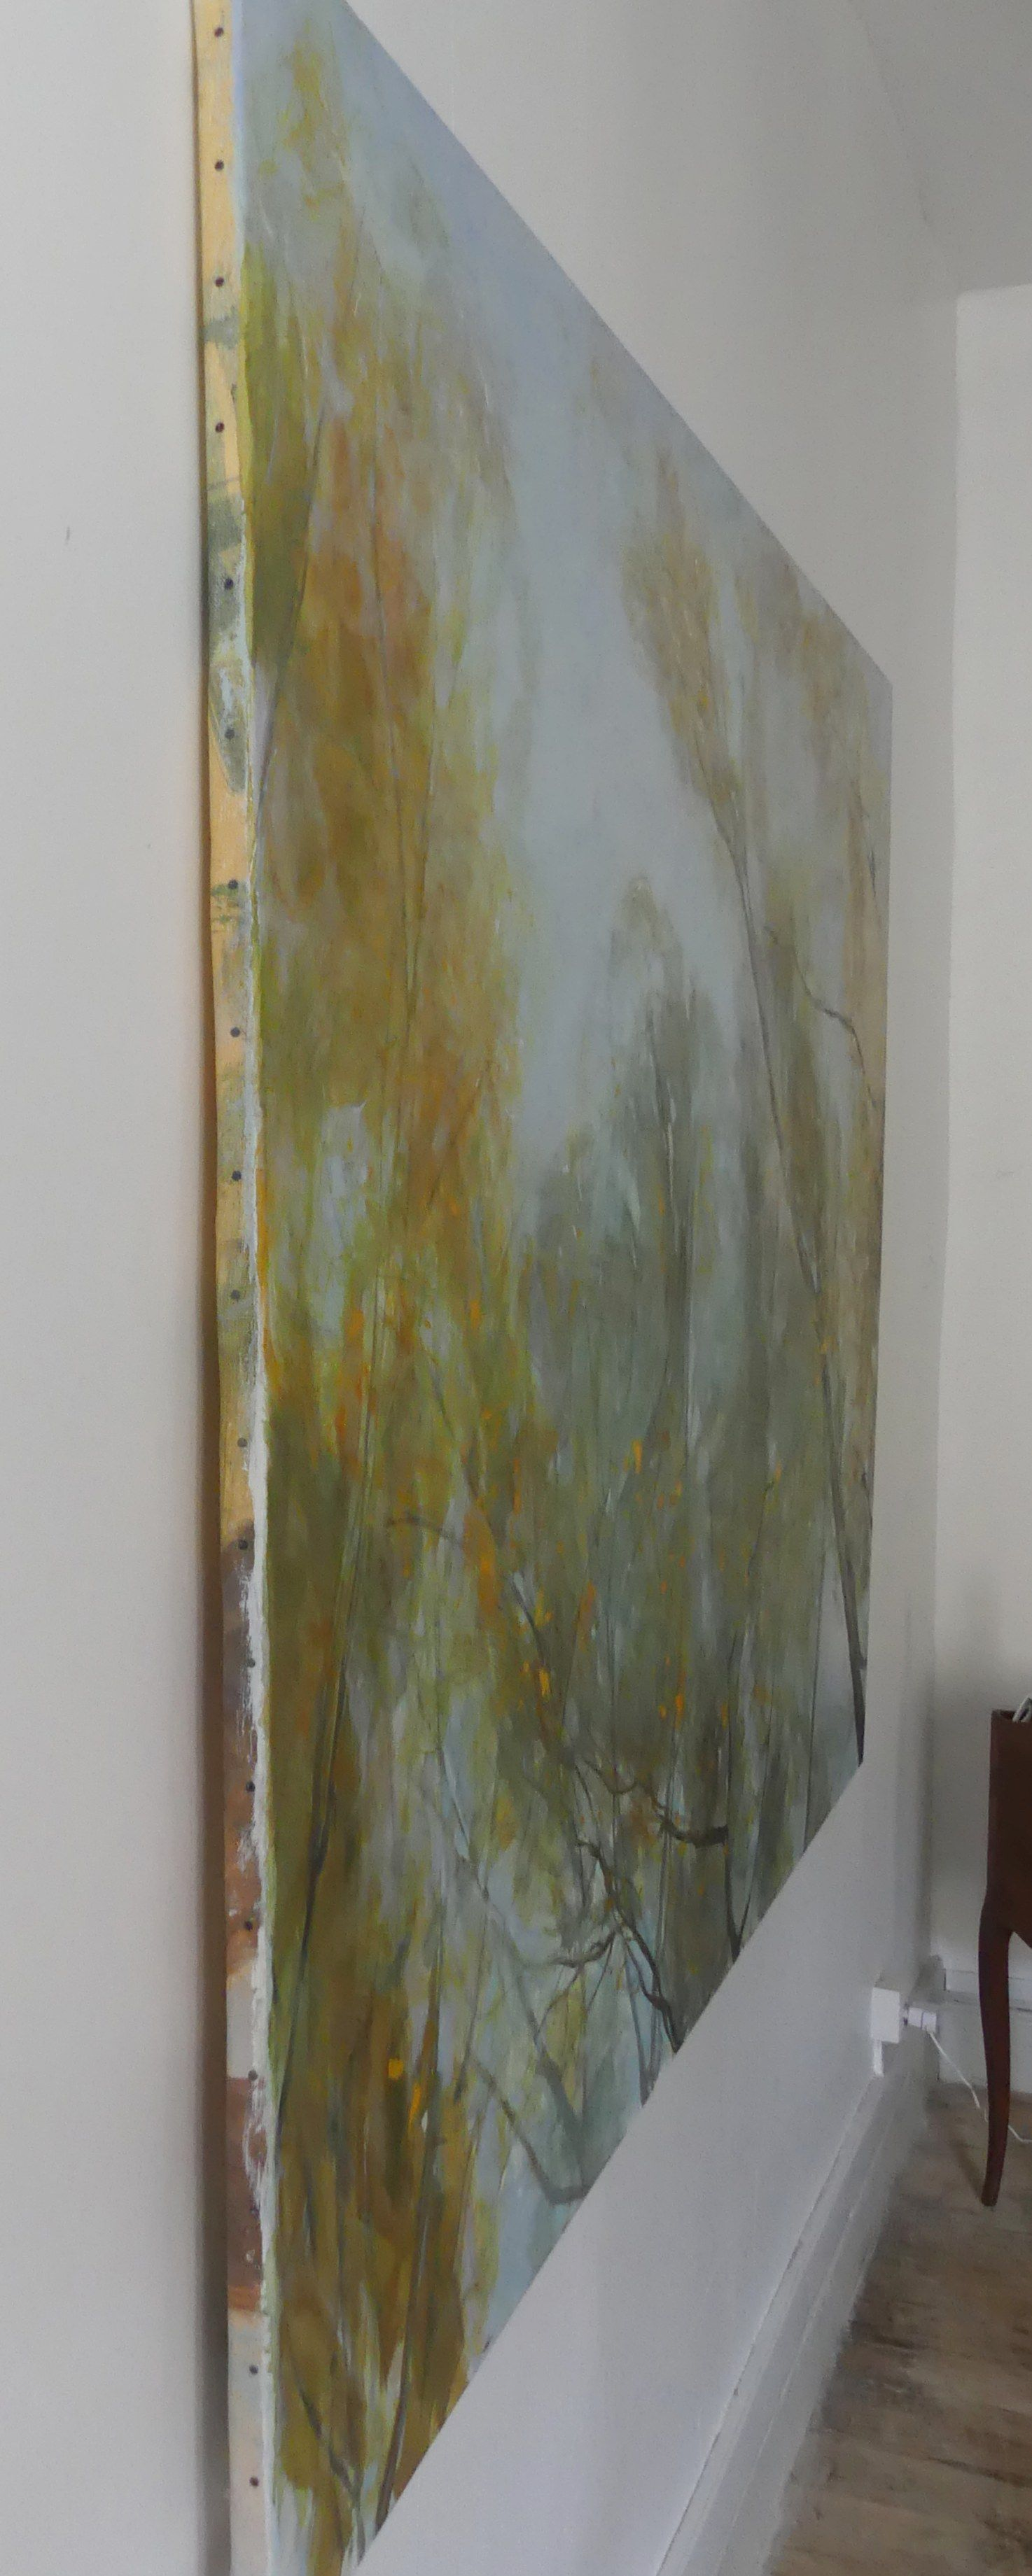 Aspens' and Willows' Branches in Autumn ,Valérie de Sarrieu,Contemporary painting, detail 4